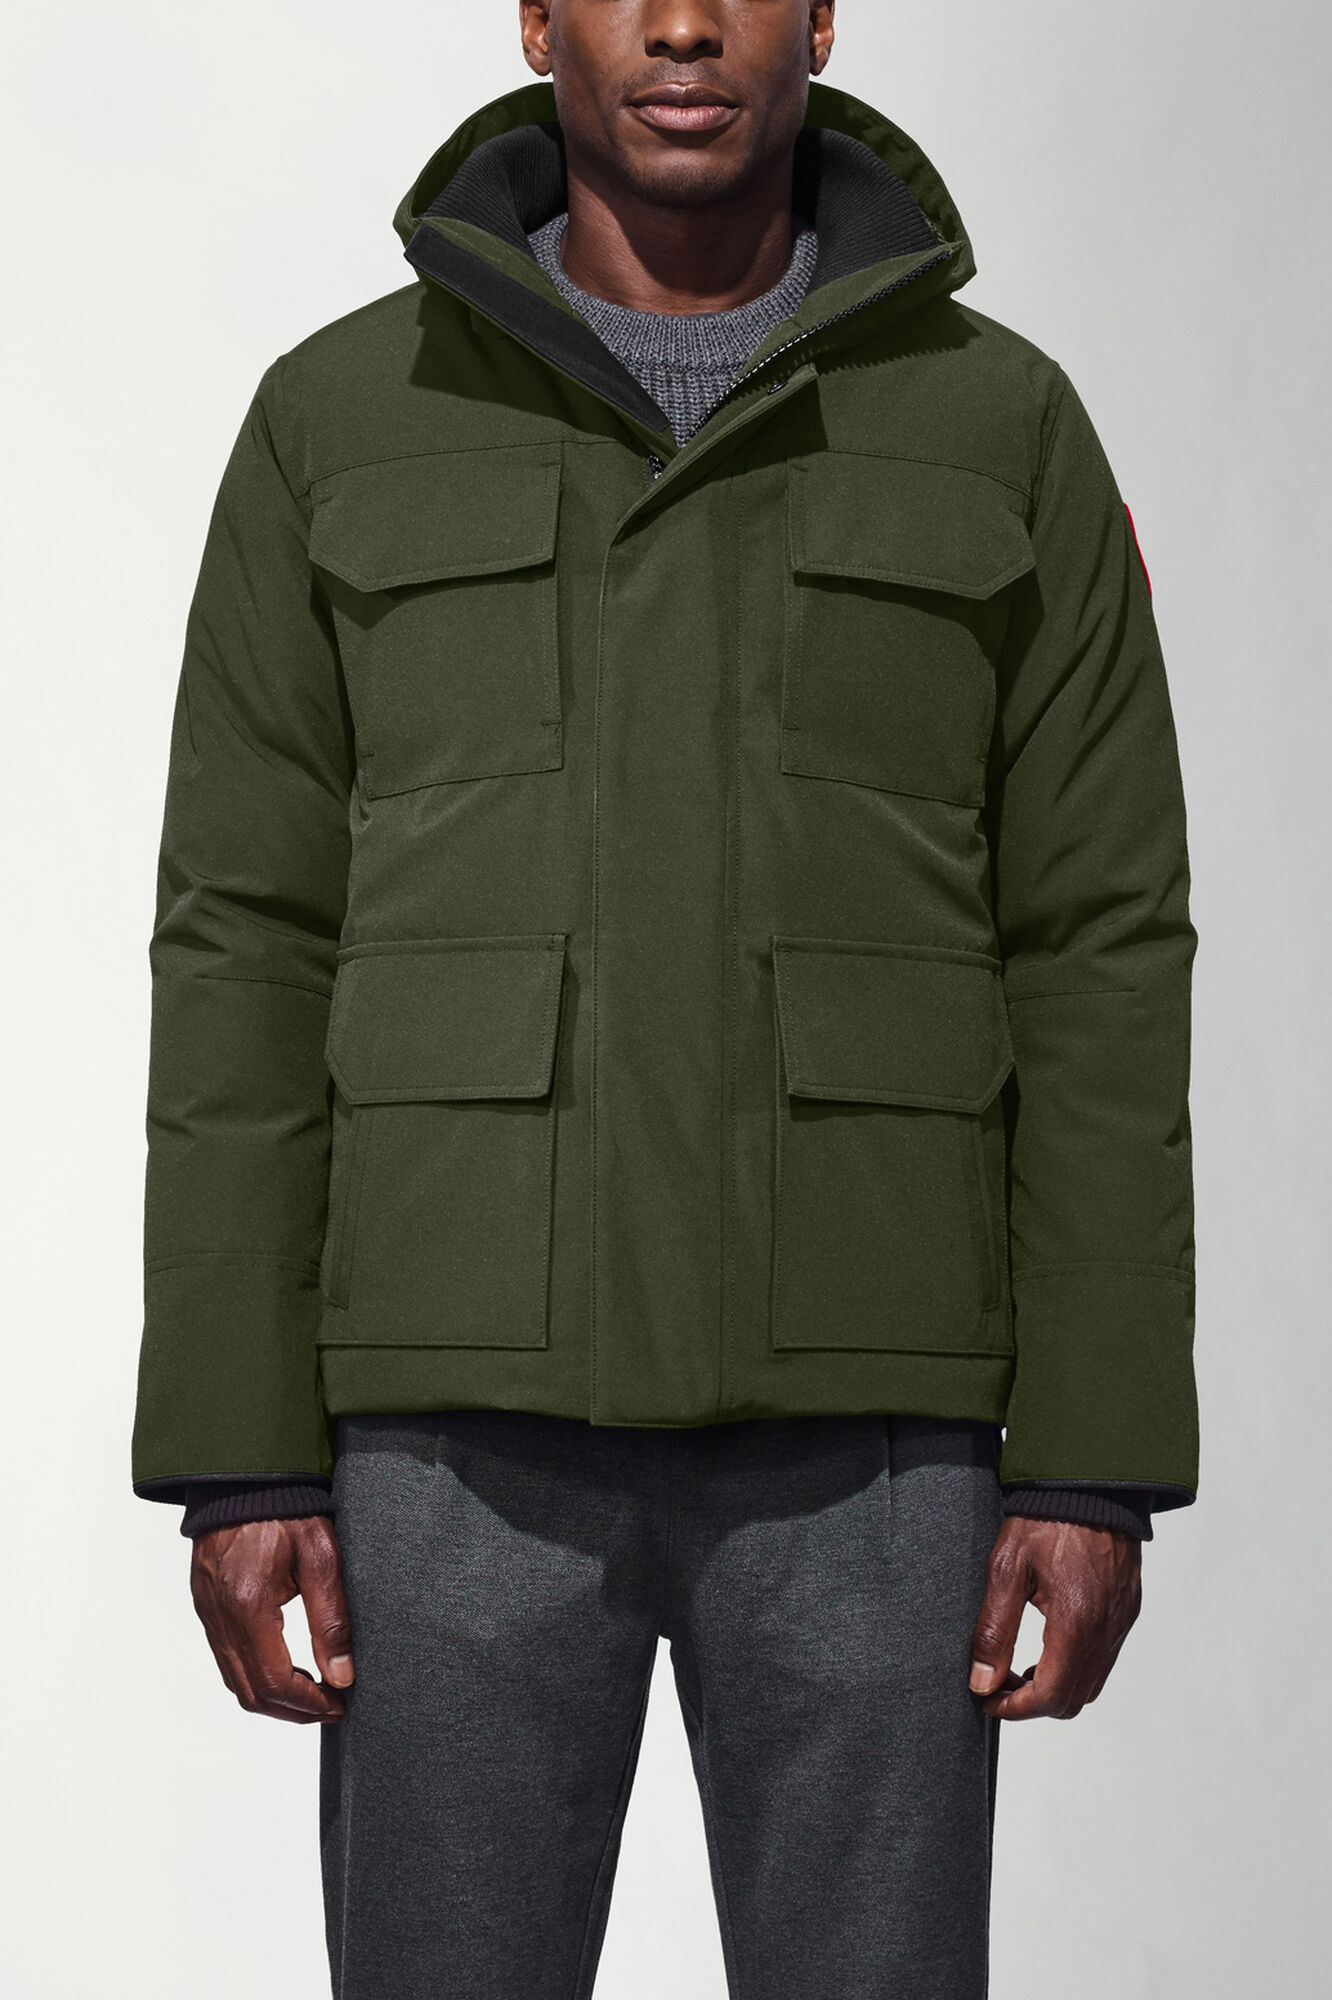 canada goose men&s clothing